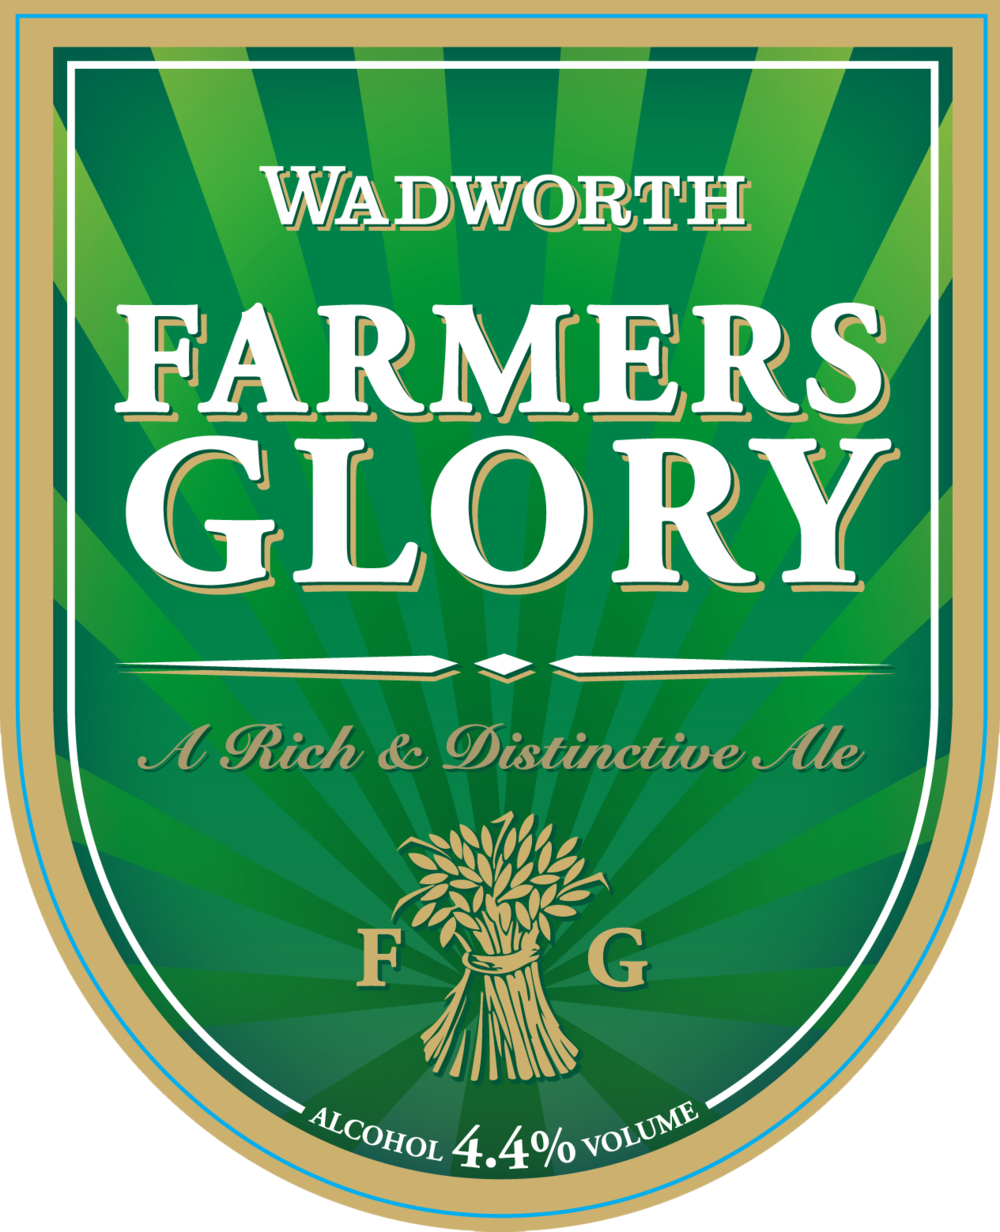 Farmers_Glory_PumpClip 4.4% abv.png